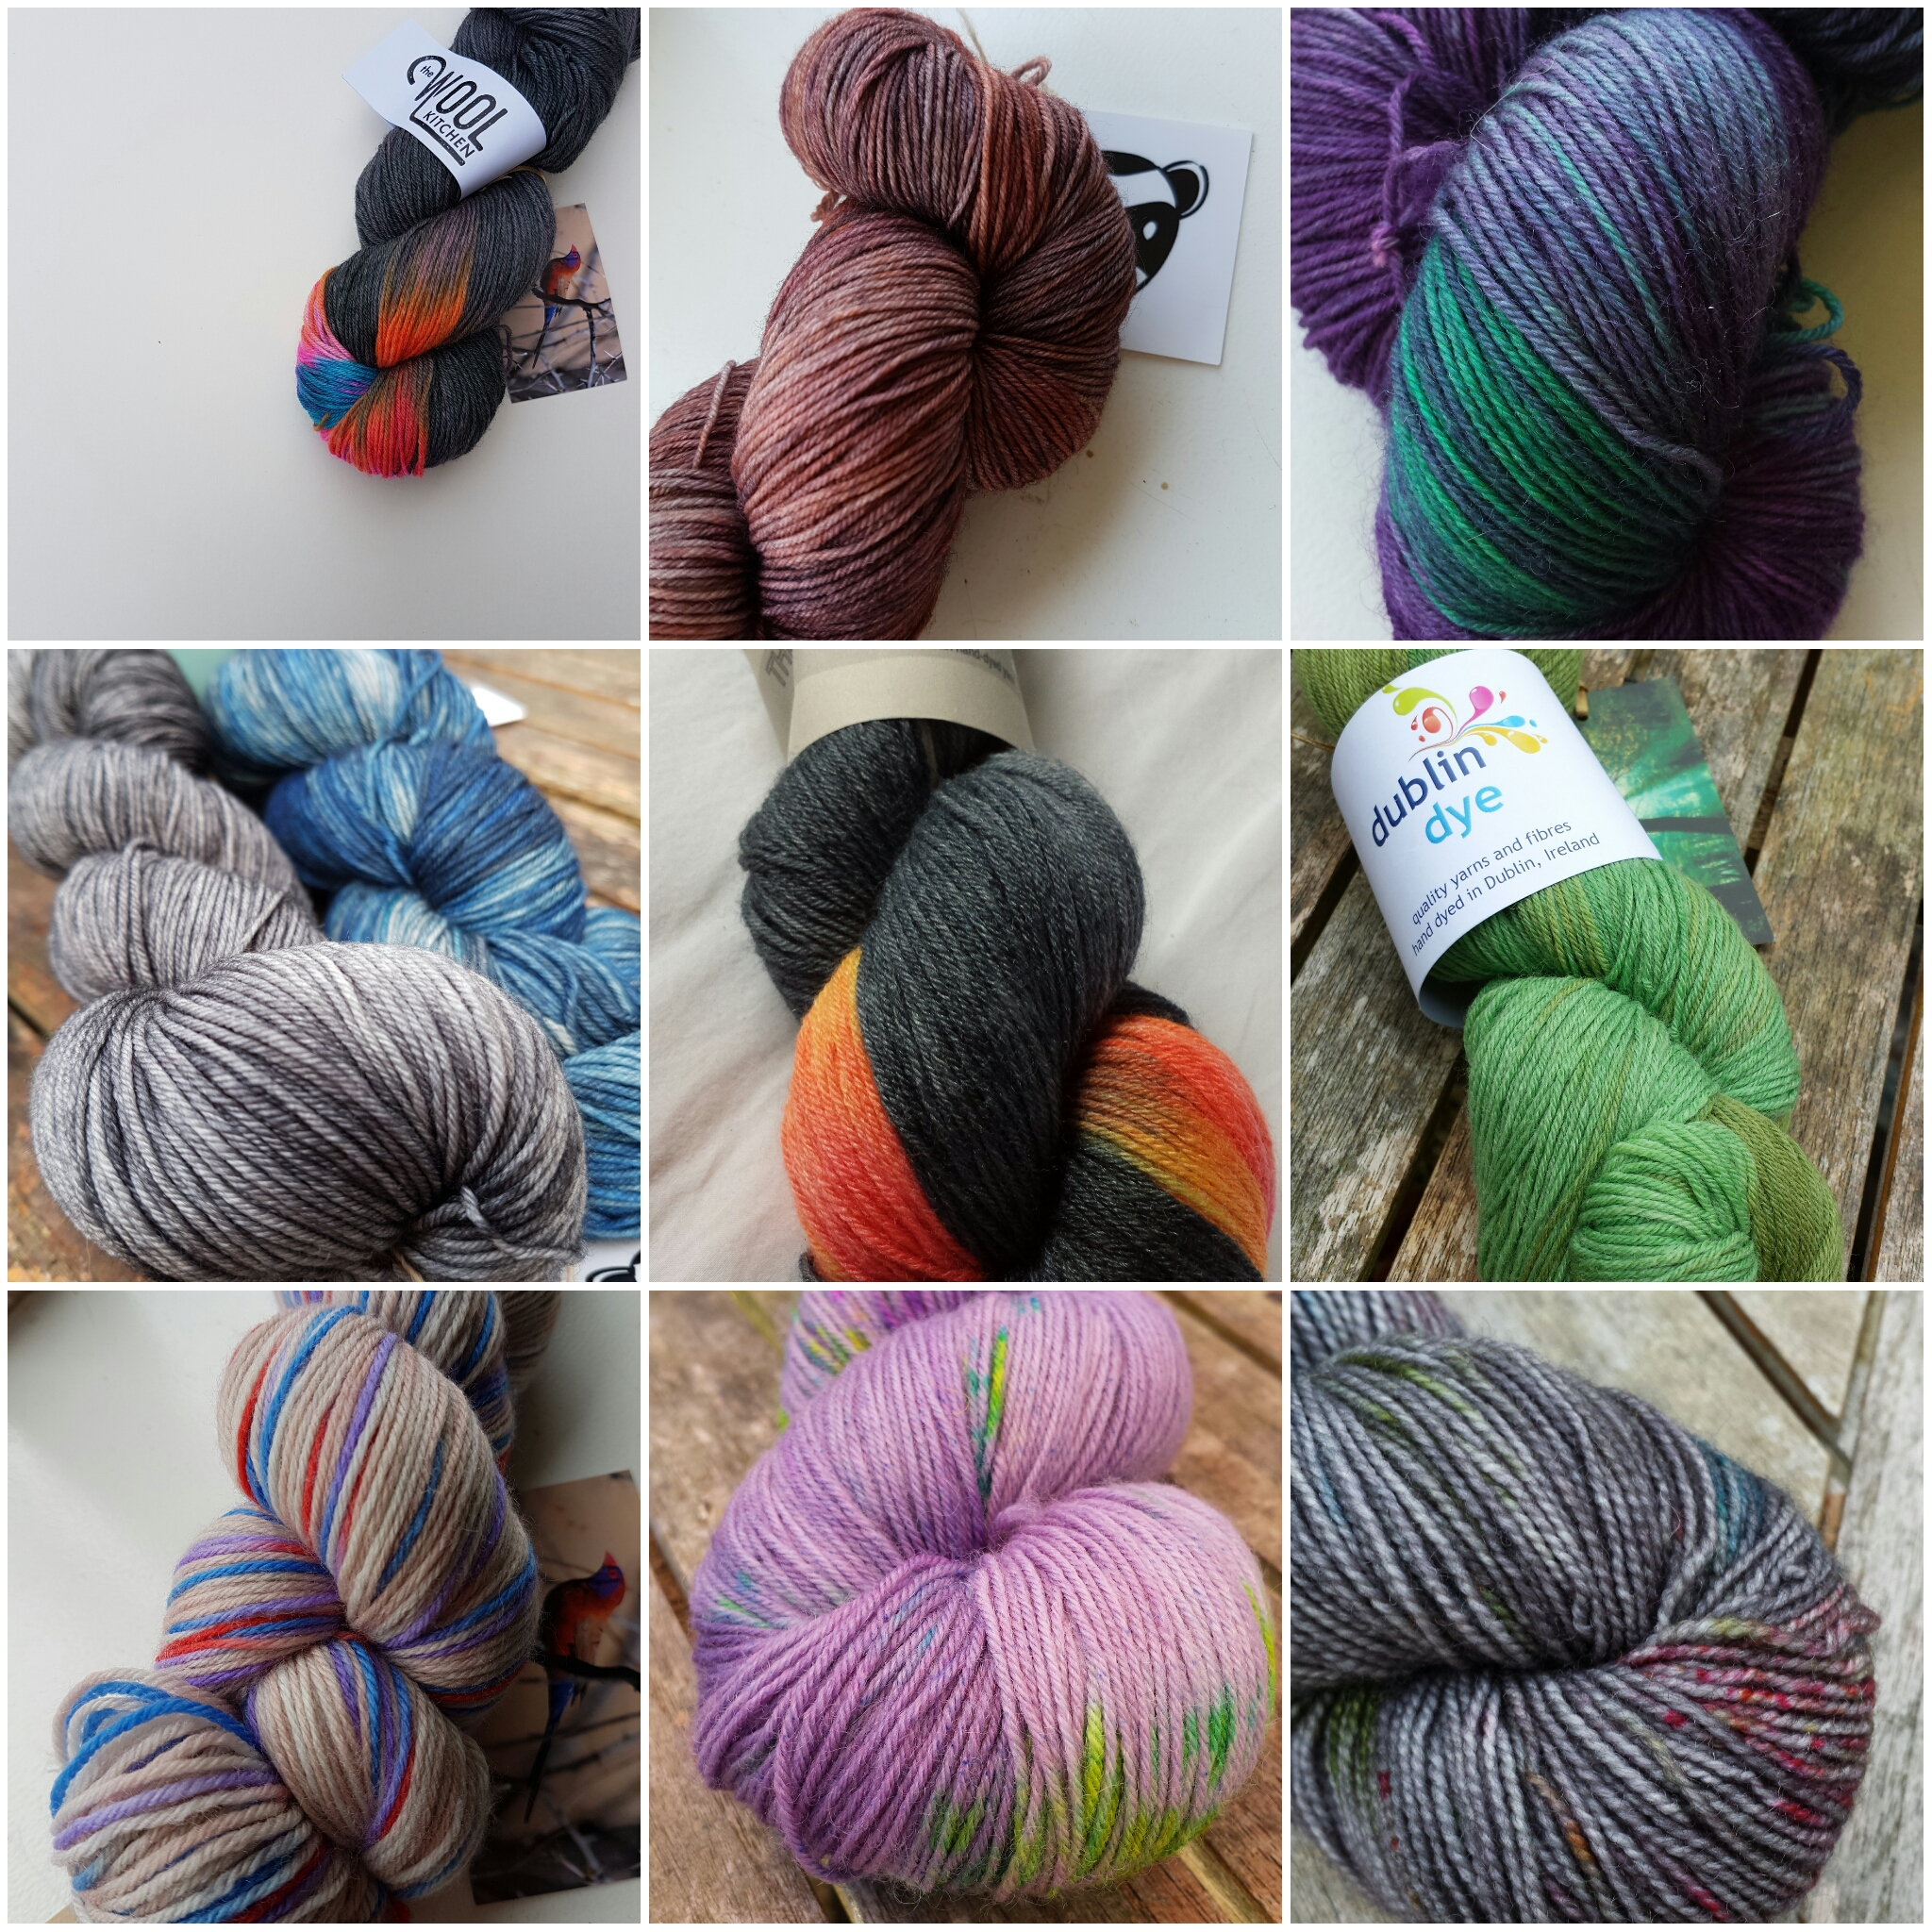 Some of my most prized sock yarn possessions - I would grab these first if the house were on fire